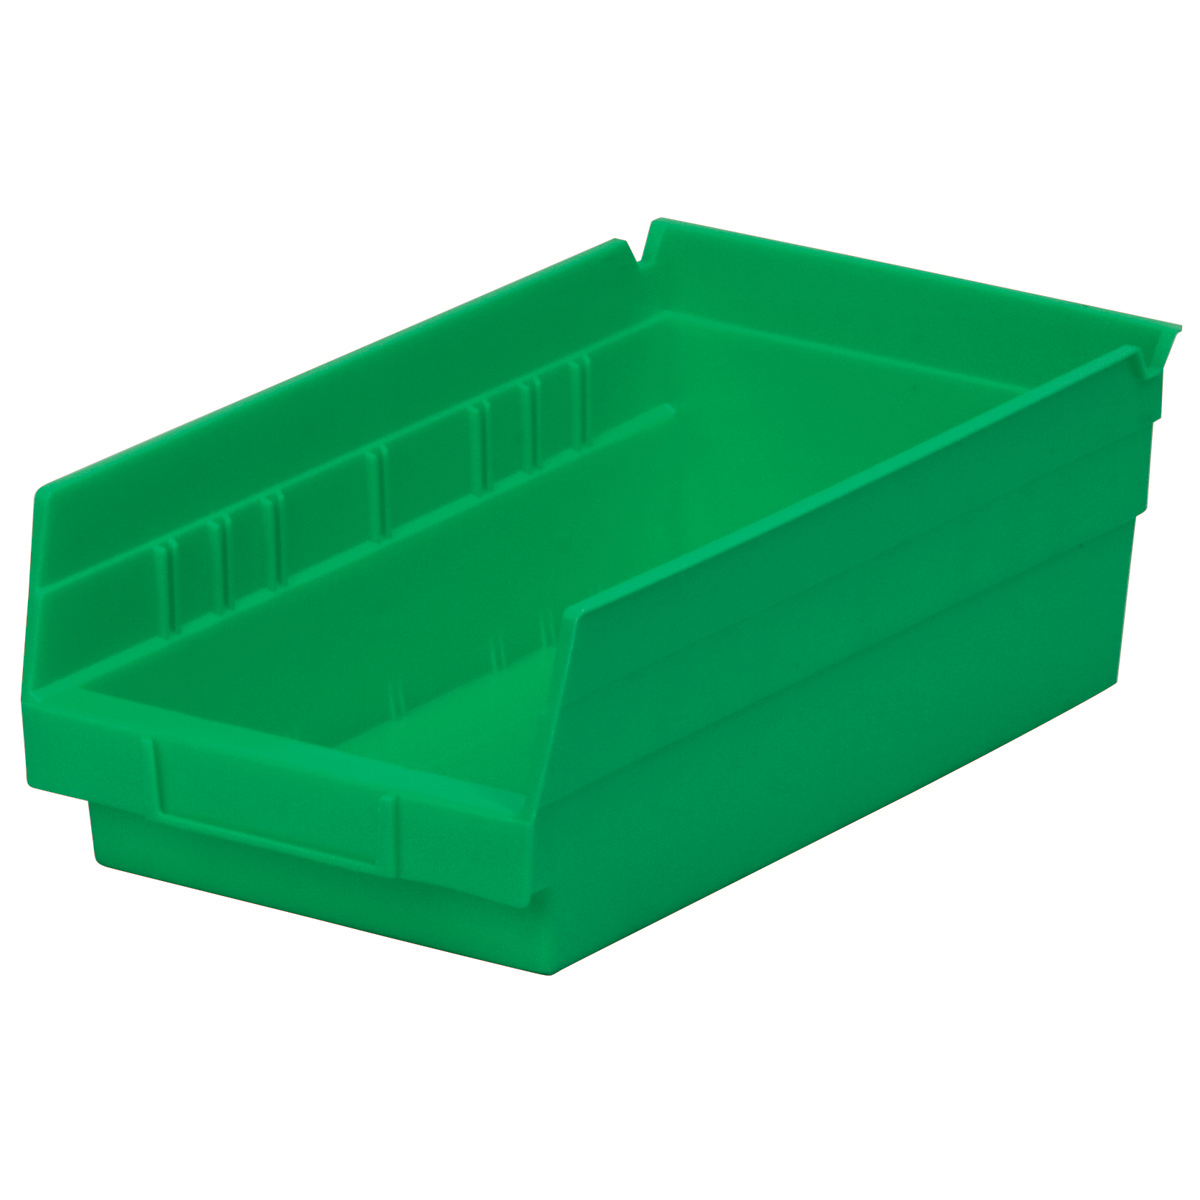 Shelf Bin 11-5/8 x 6-5/8 x 4, Green (30130GREEN).  This item sold in carton quantities of 12.